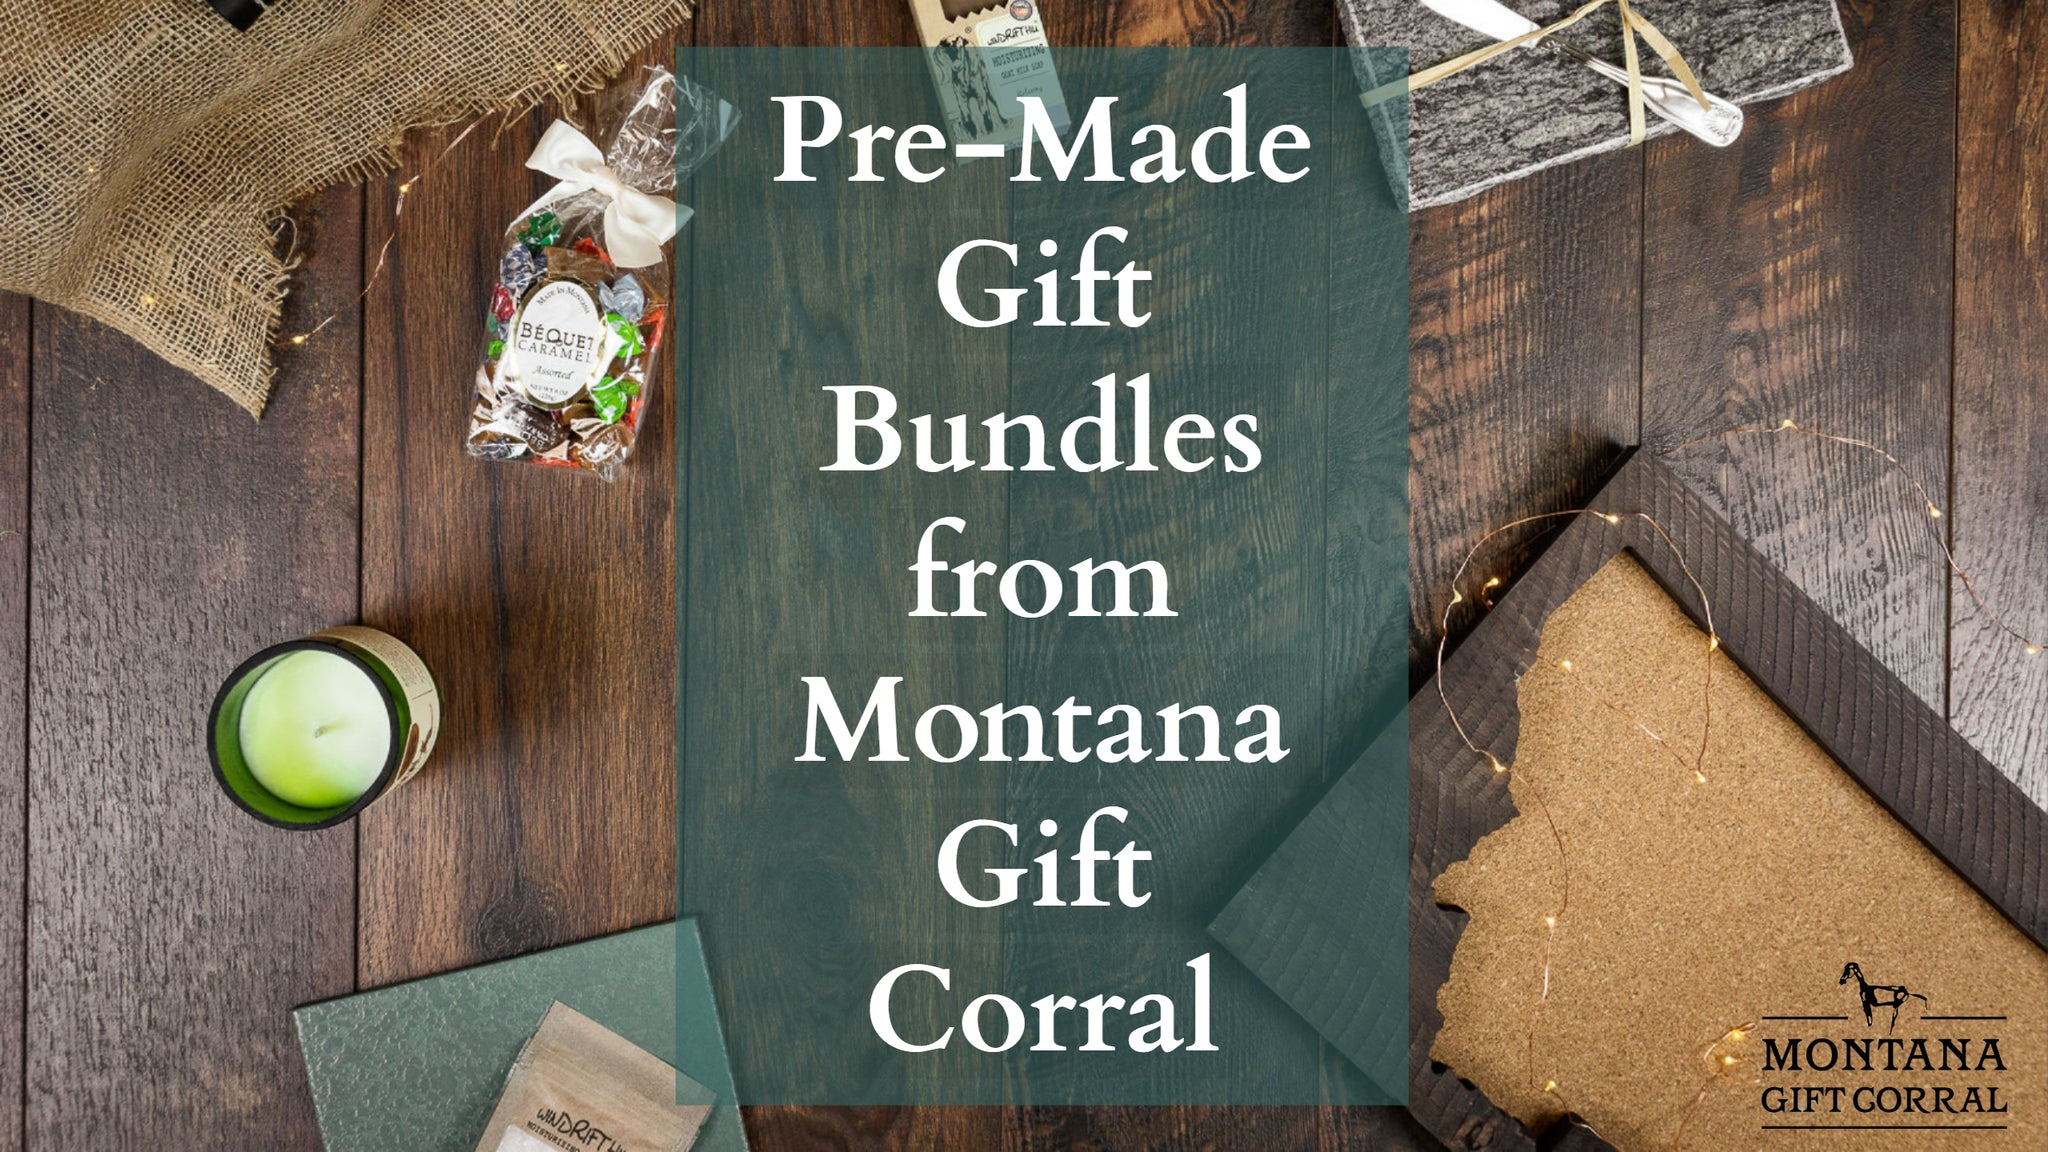 Pre-Made Gift Baskets from Montana Gift Corral